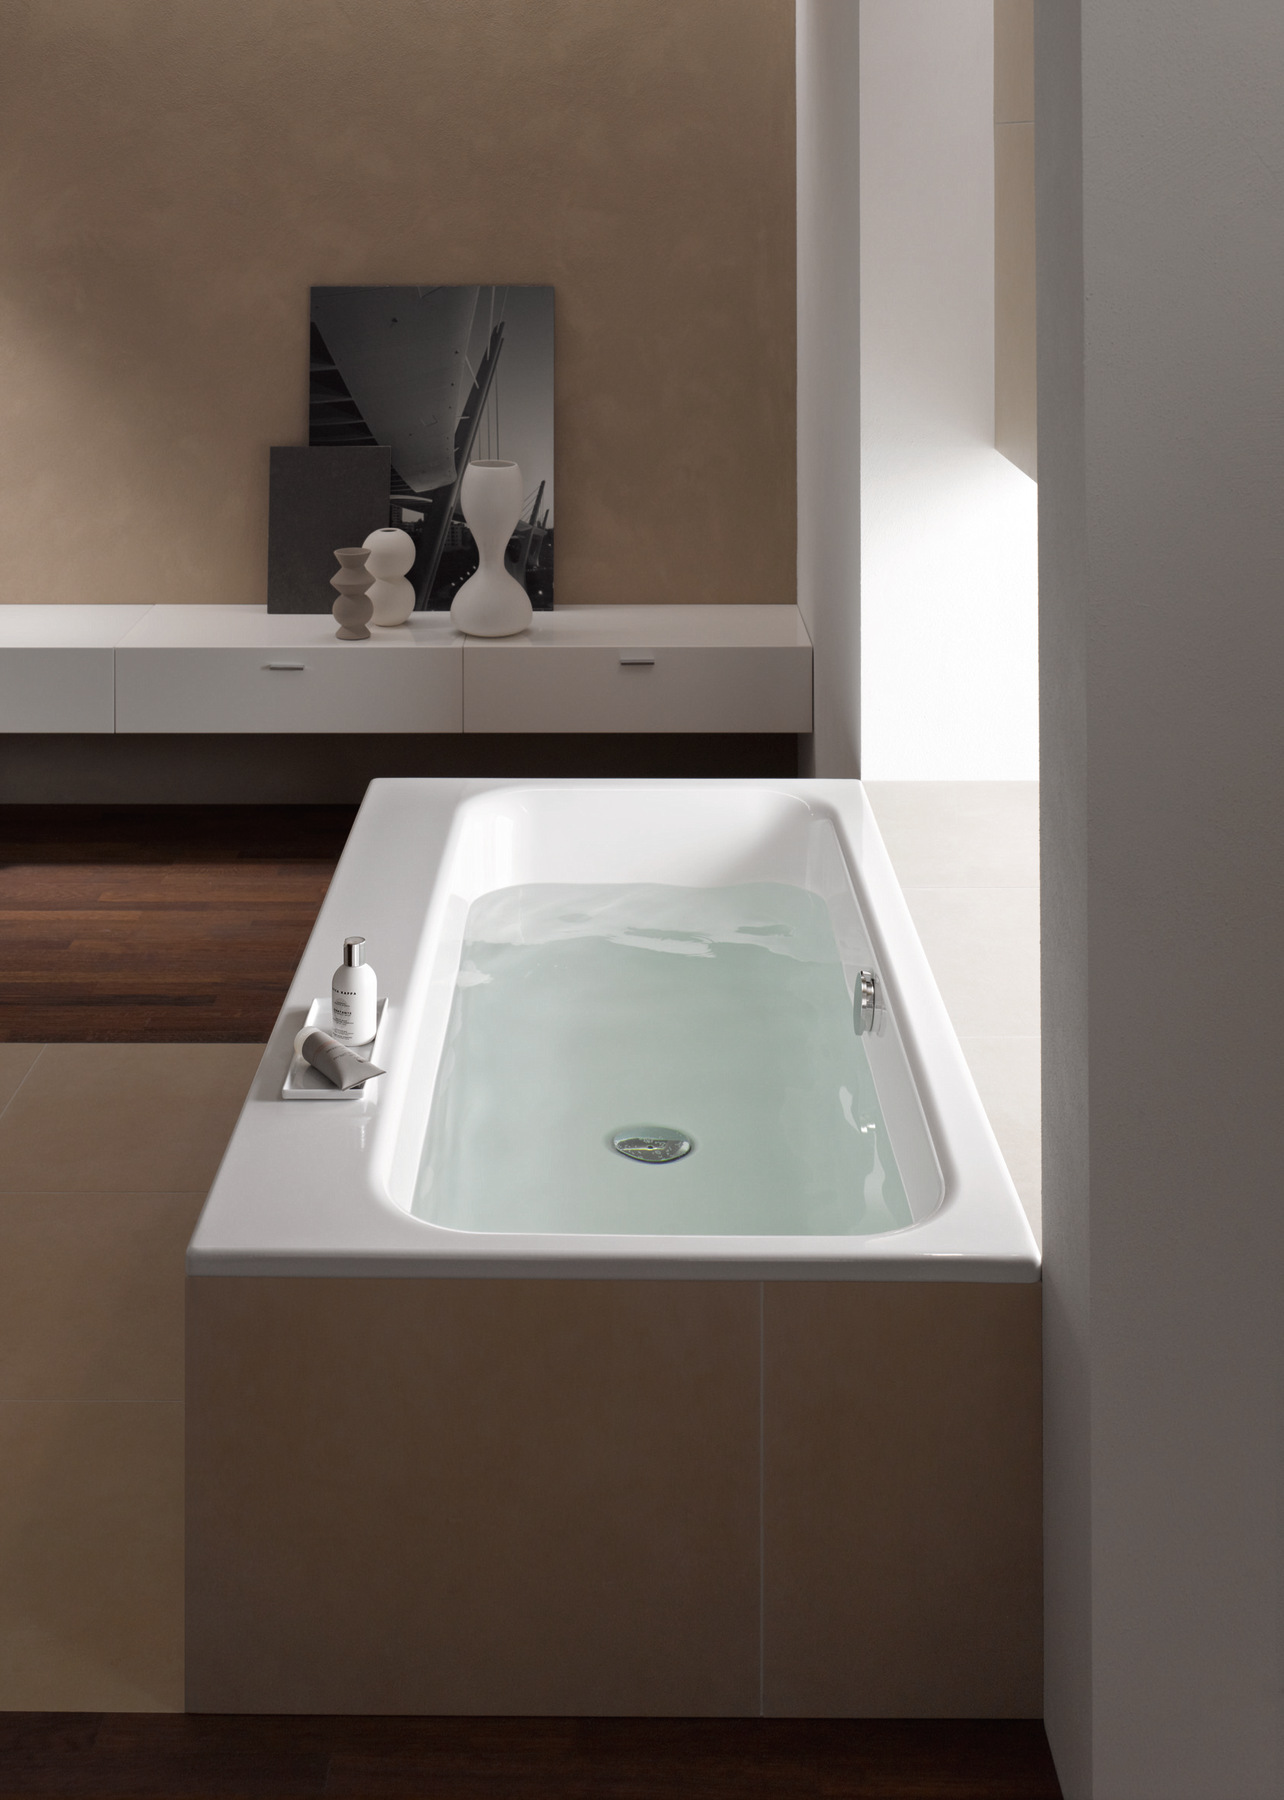 Bette Select Badewannen Built In Bathtub Betteschmiddem Ii By Bette Design